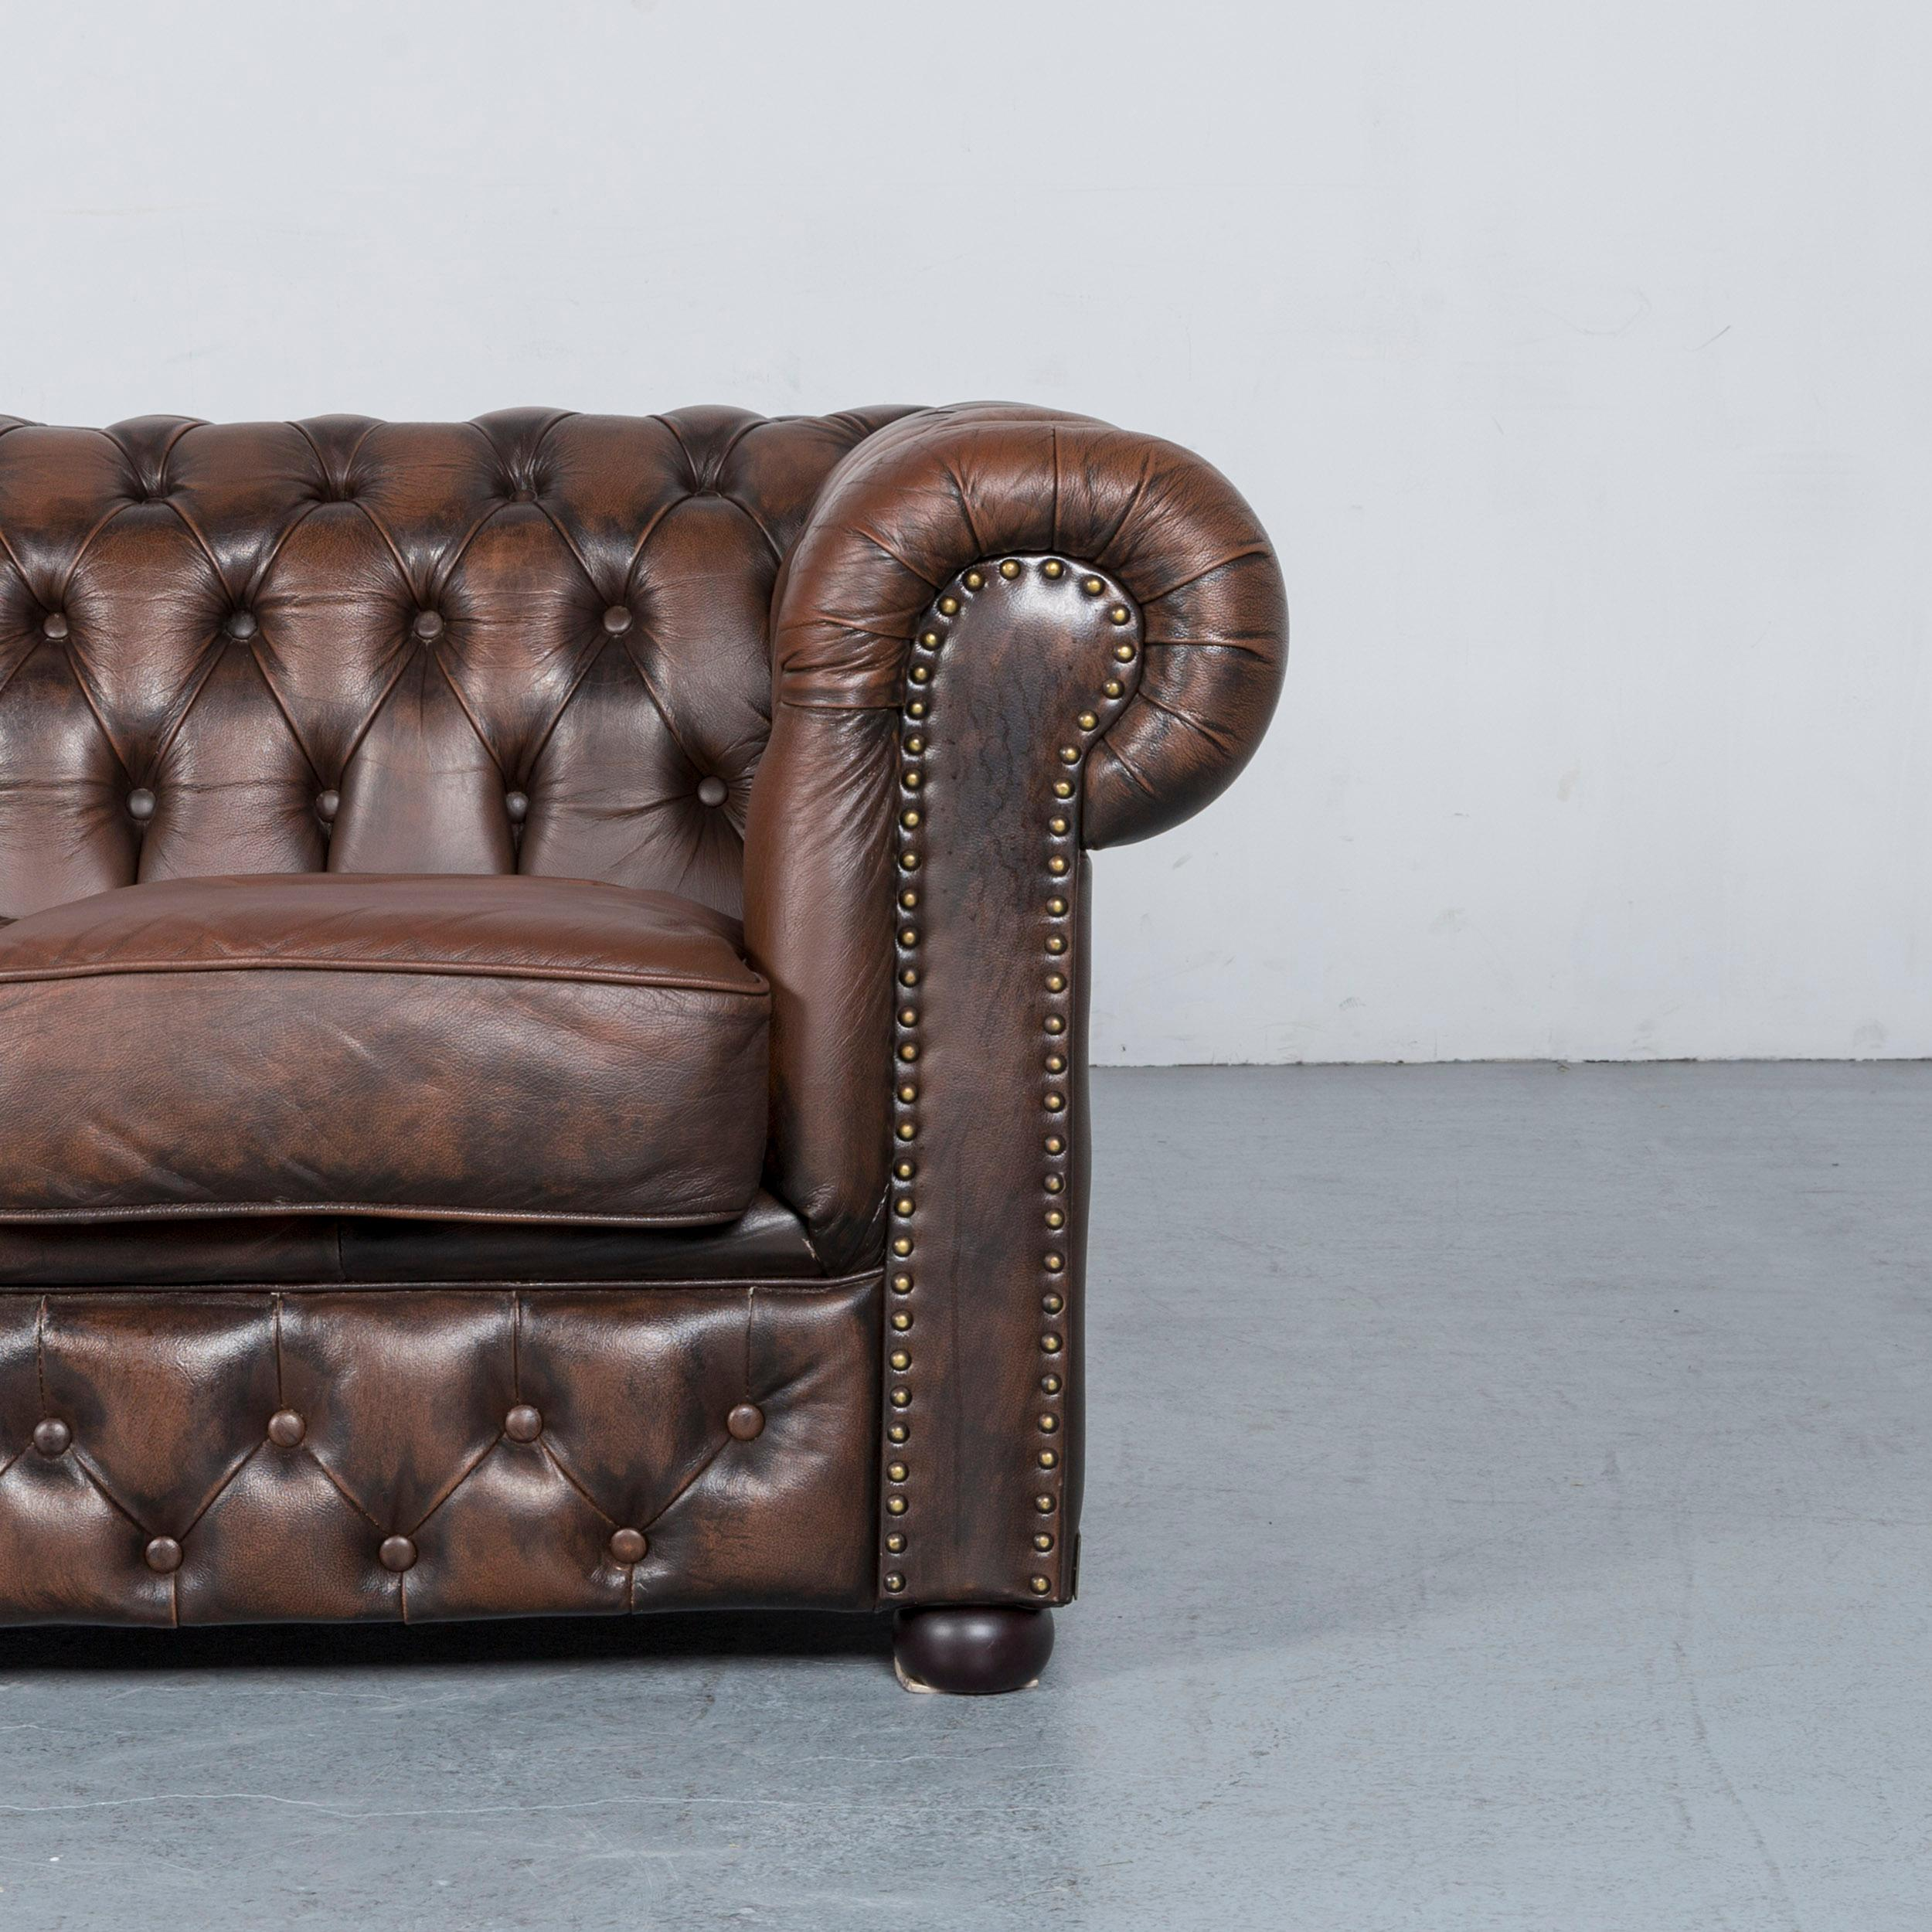 Merveilleux Chesterfield Leather Sofa Brown Three Seat Armchair Set Vintage Retro In  Good Condition For Sale